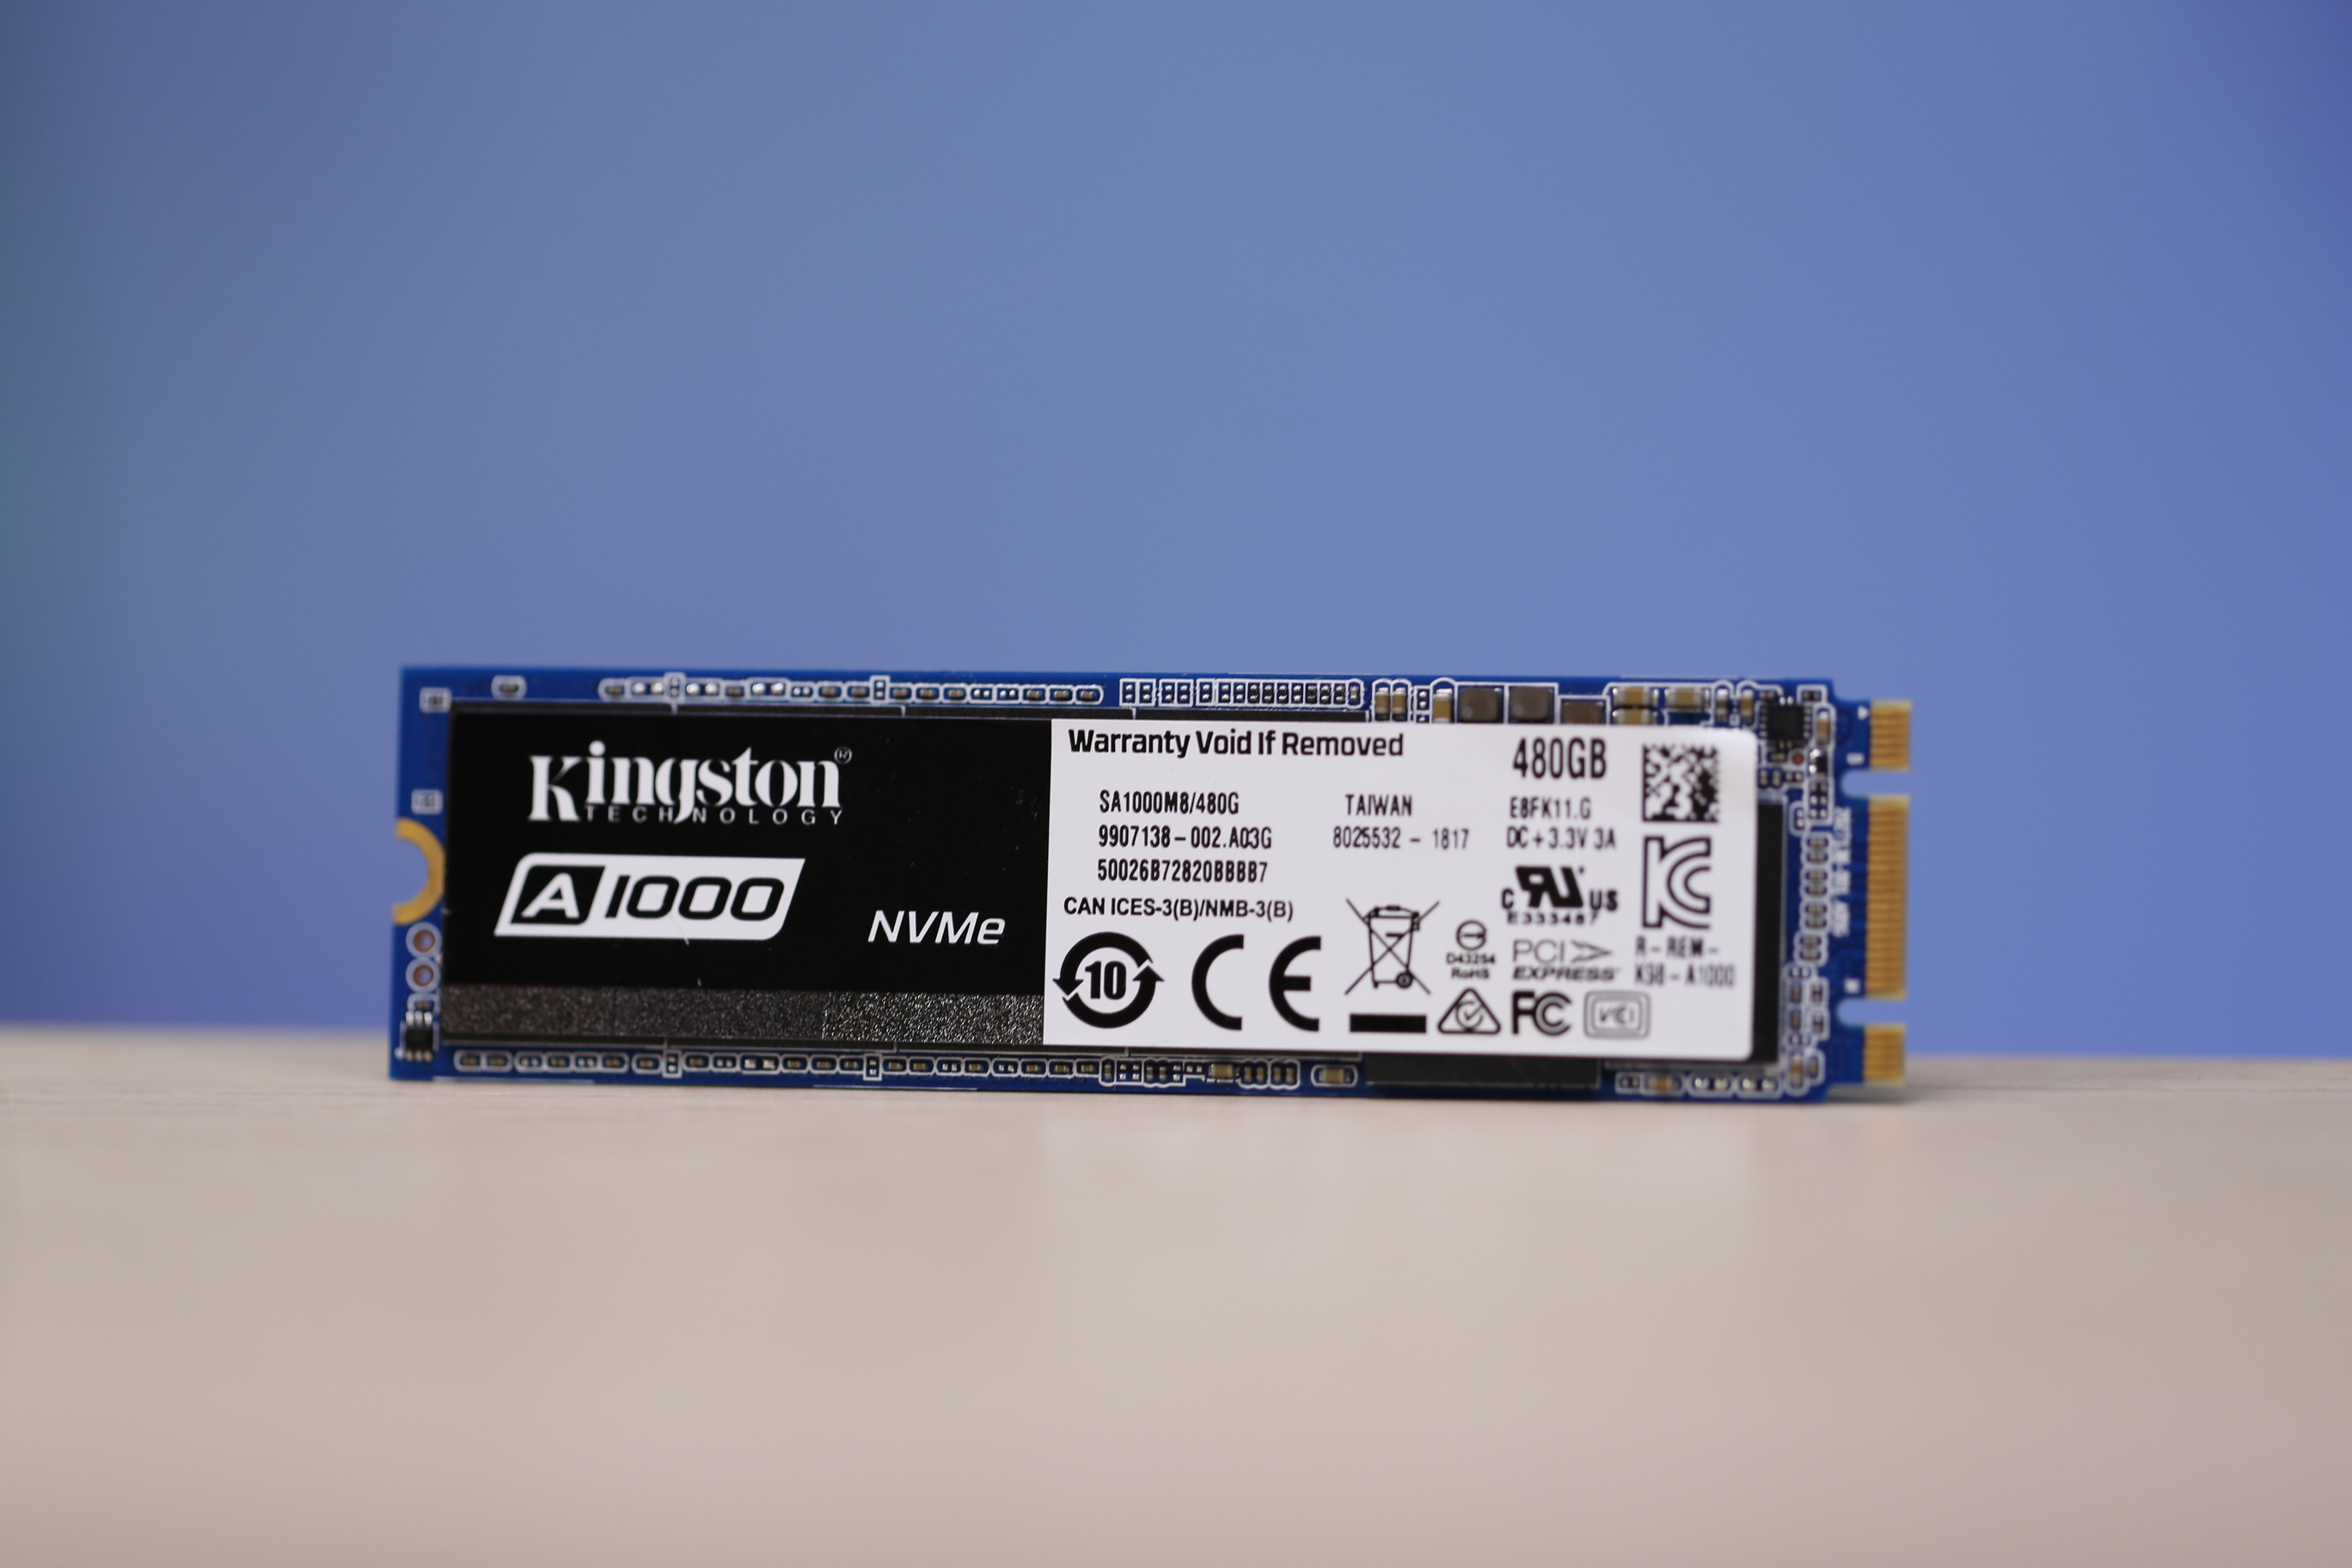 Kingston A1000 480 GB (23)